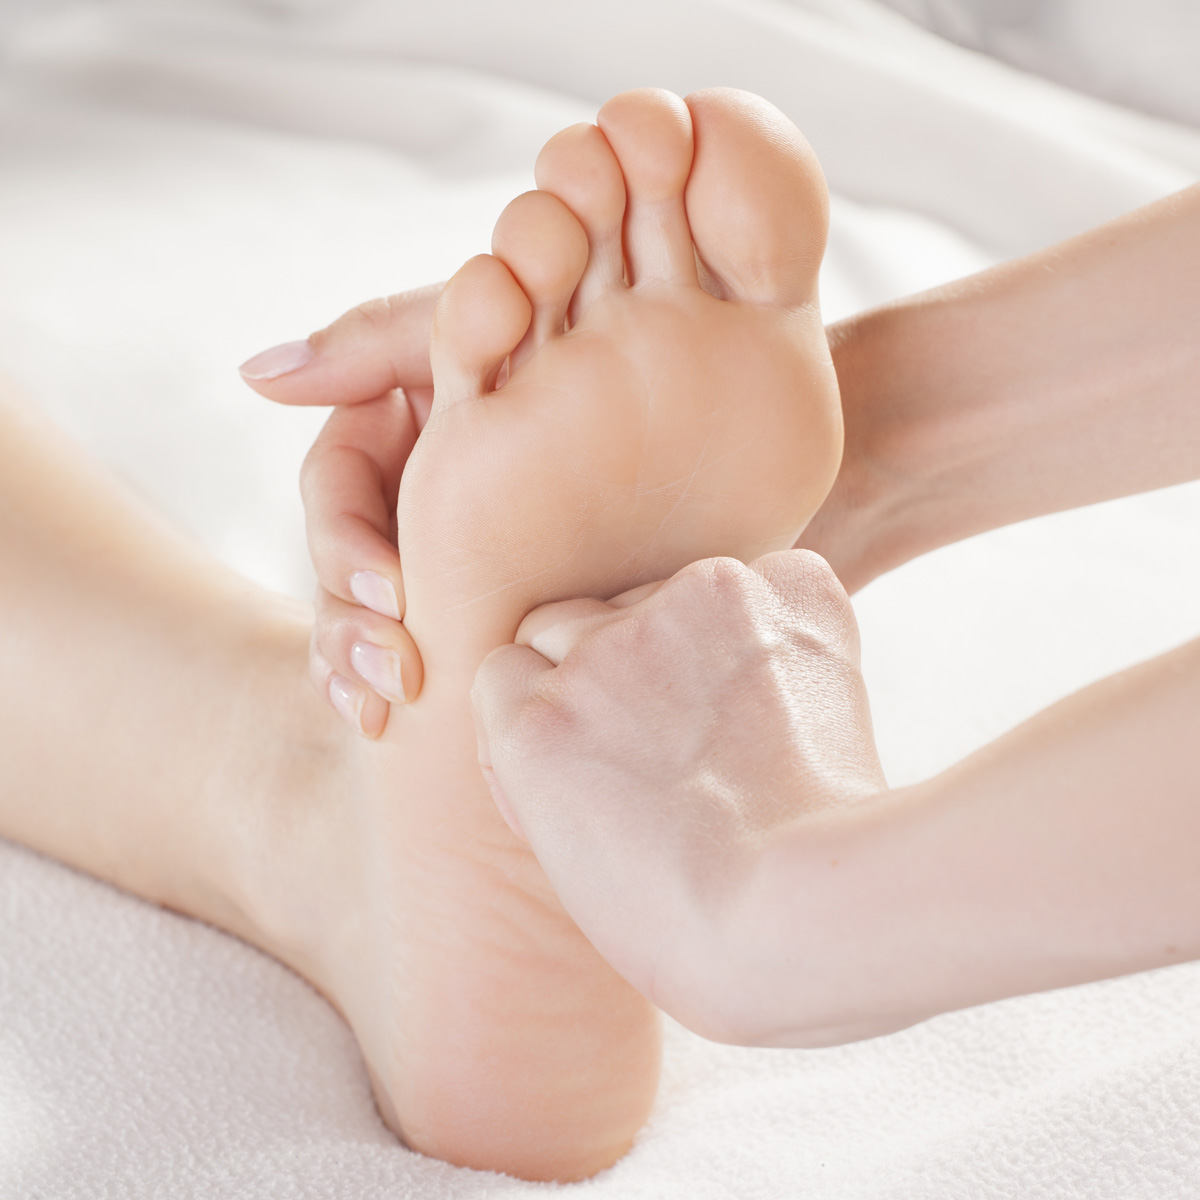 Pure Holistics Reflexology